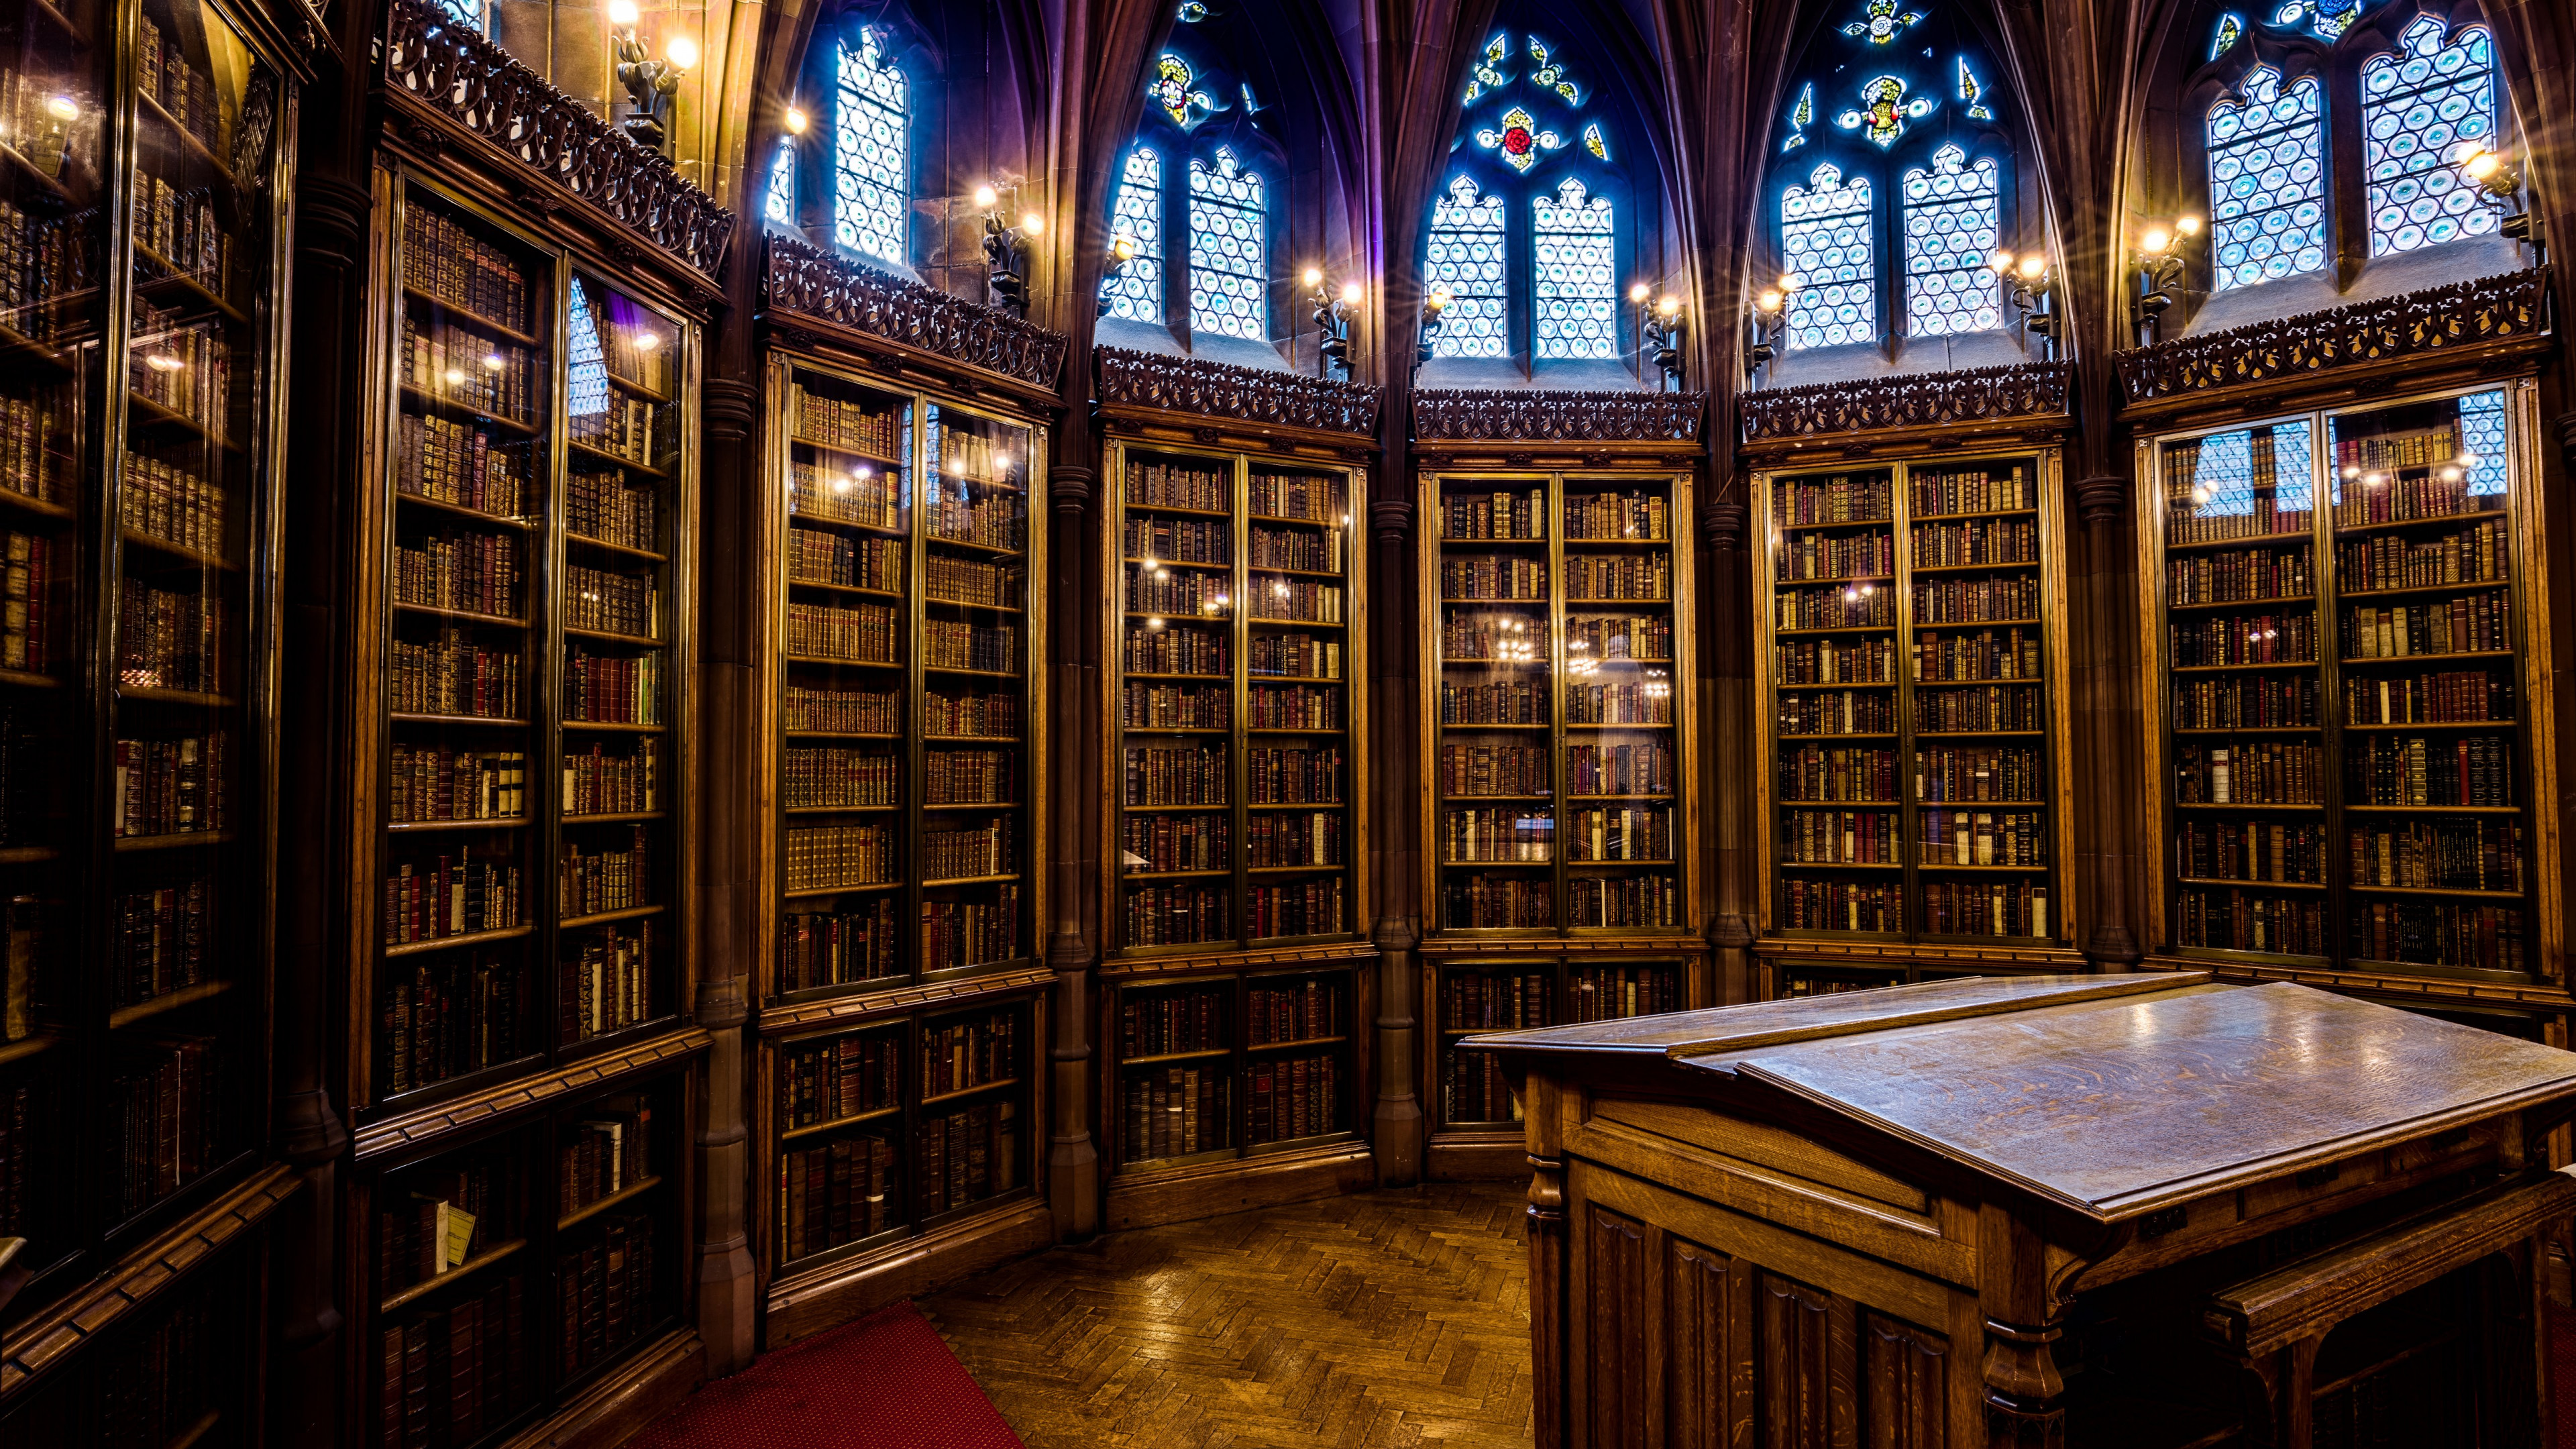 The Interior of John Rylands library wallpaper 3840x2160